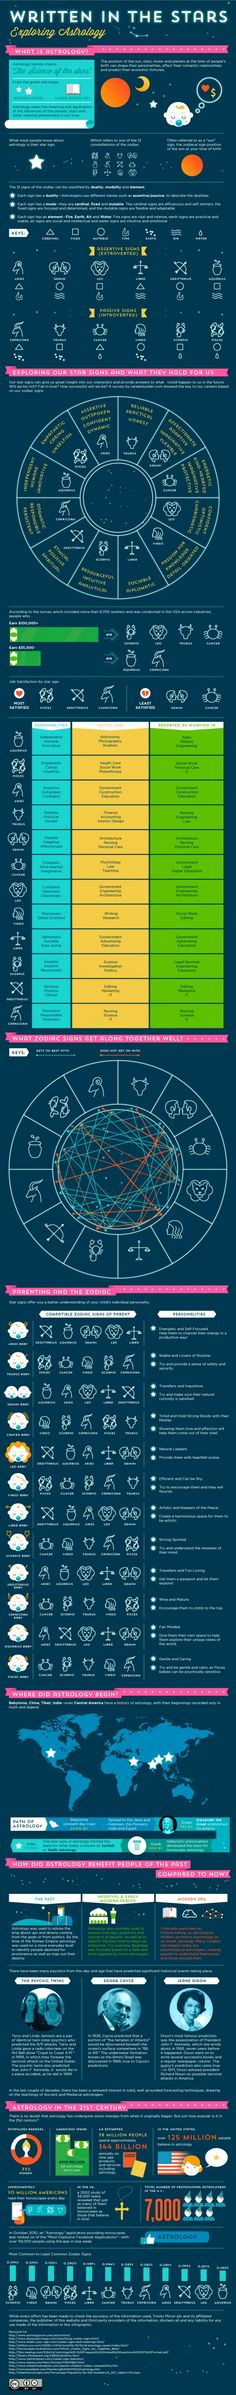 Written In The Stars: Exploring Astrology | NerdGraph Infographics